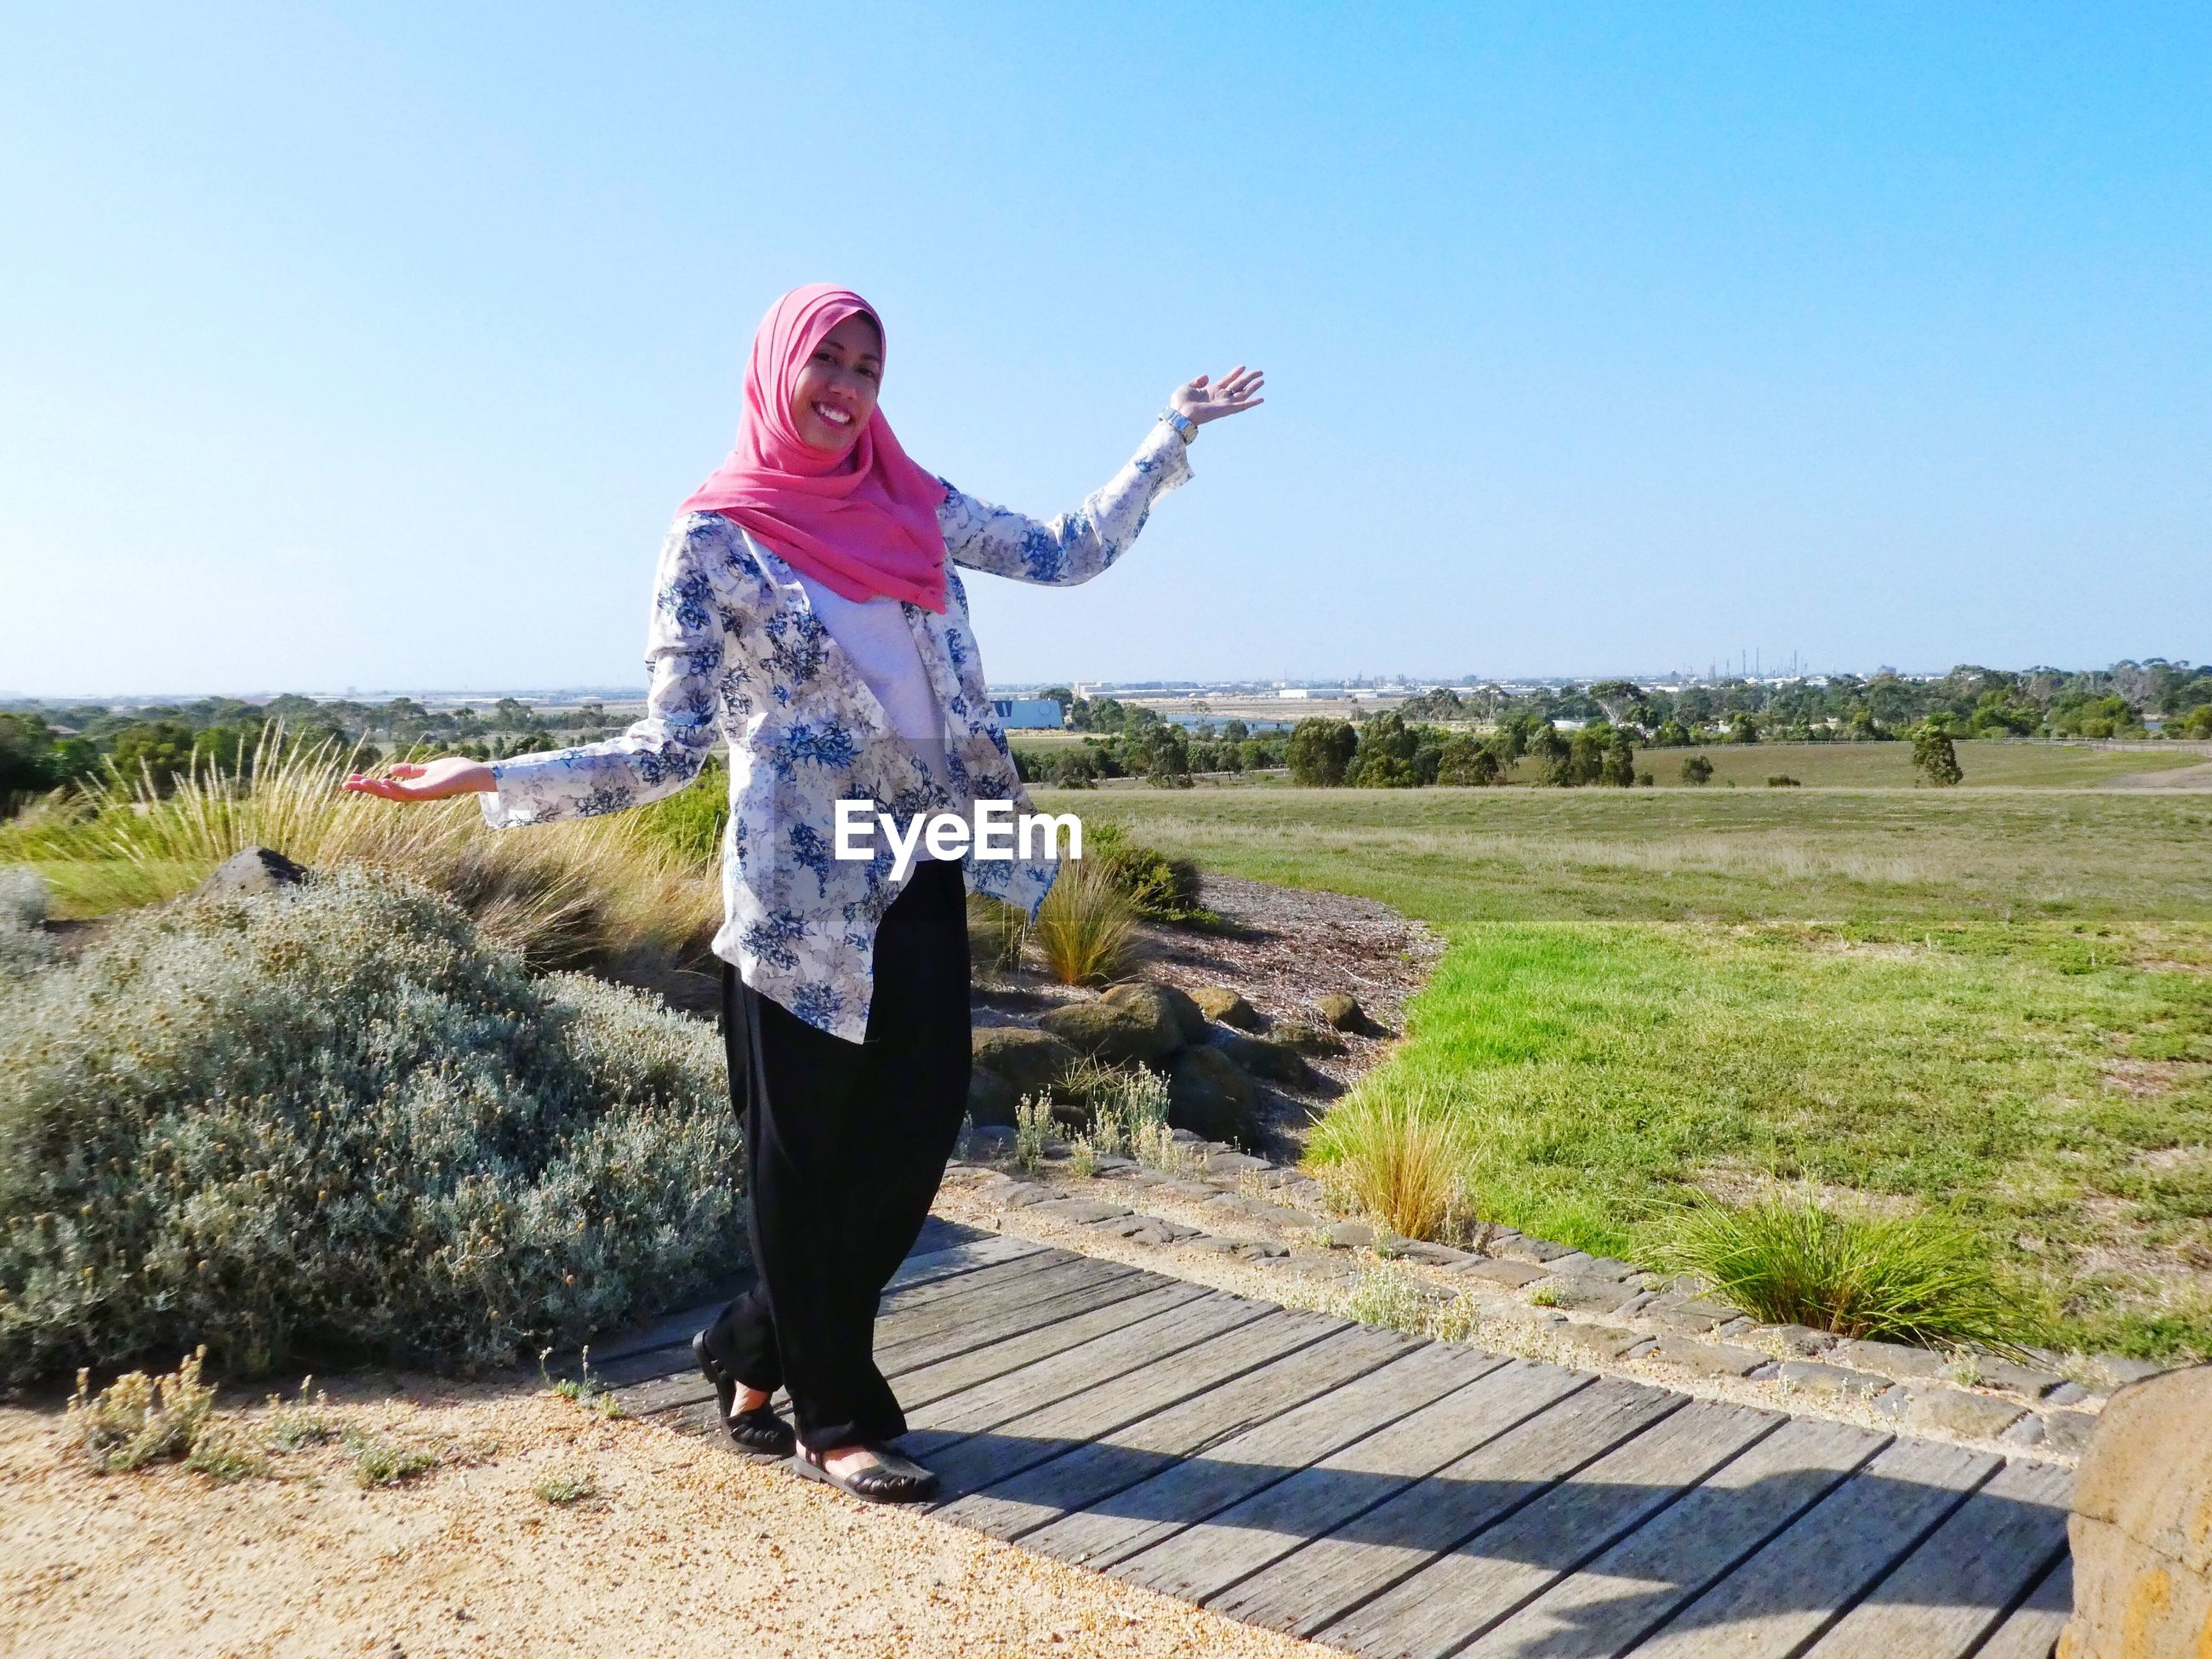 real people, one person, day, standing, full length, clear sky, field, sunlight, casual clothing, outdoors, nature, leisure activity, lifestyles, mature women, mature adult, sky, beauty in nature, grass, landscape, women, people